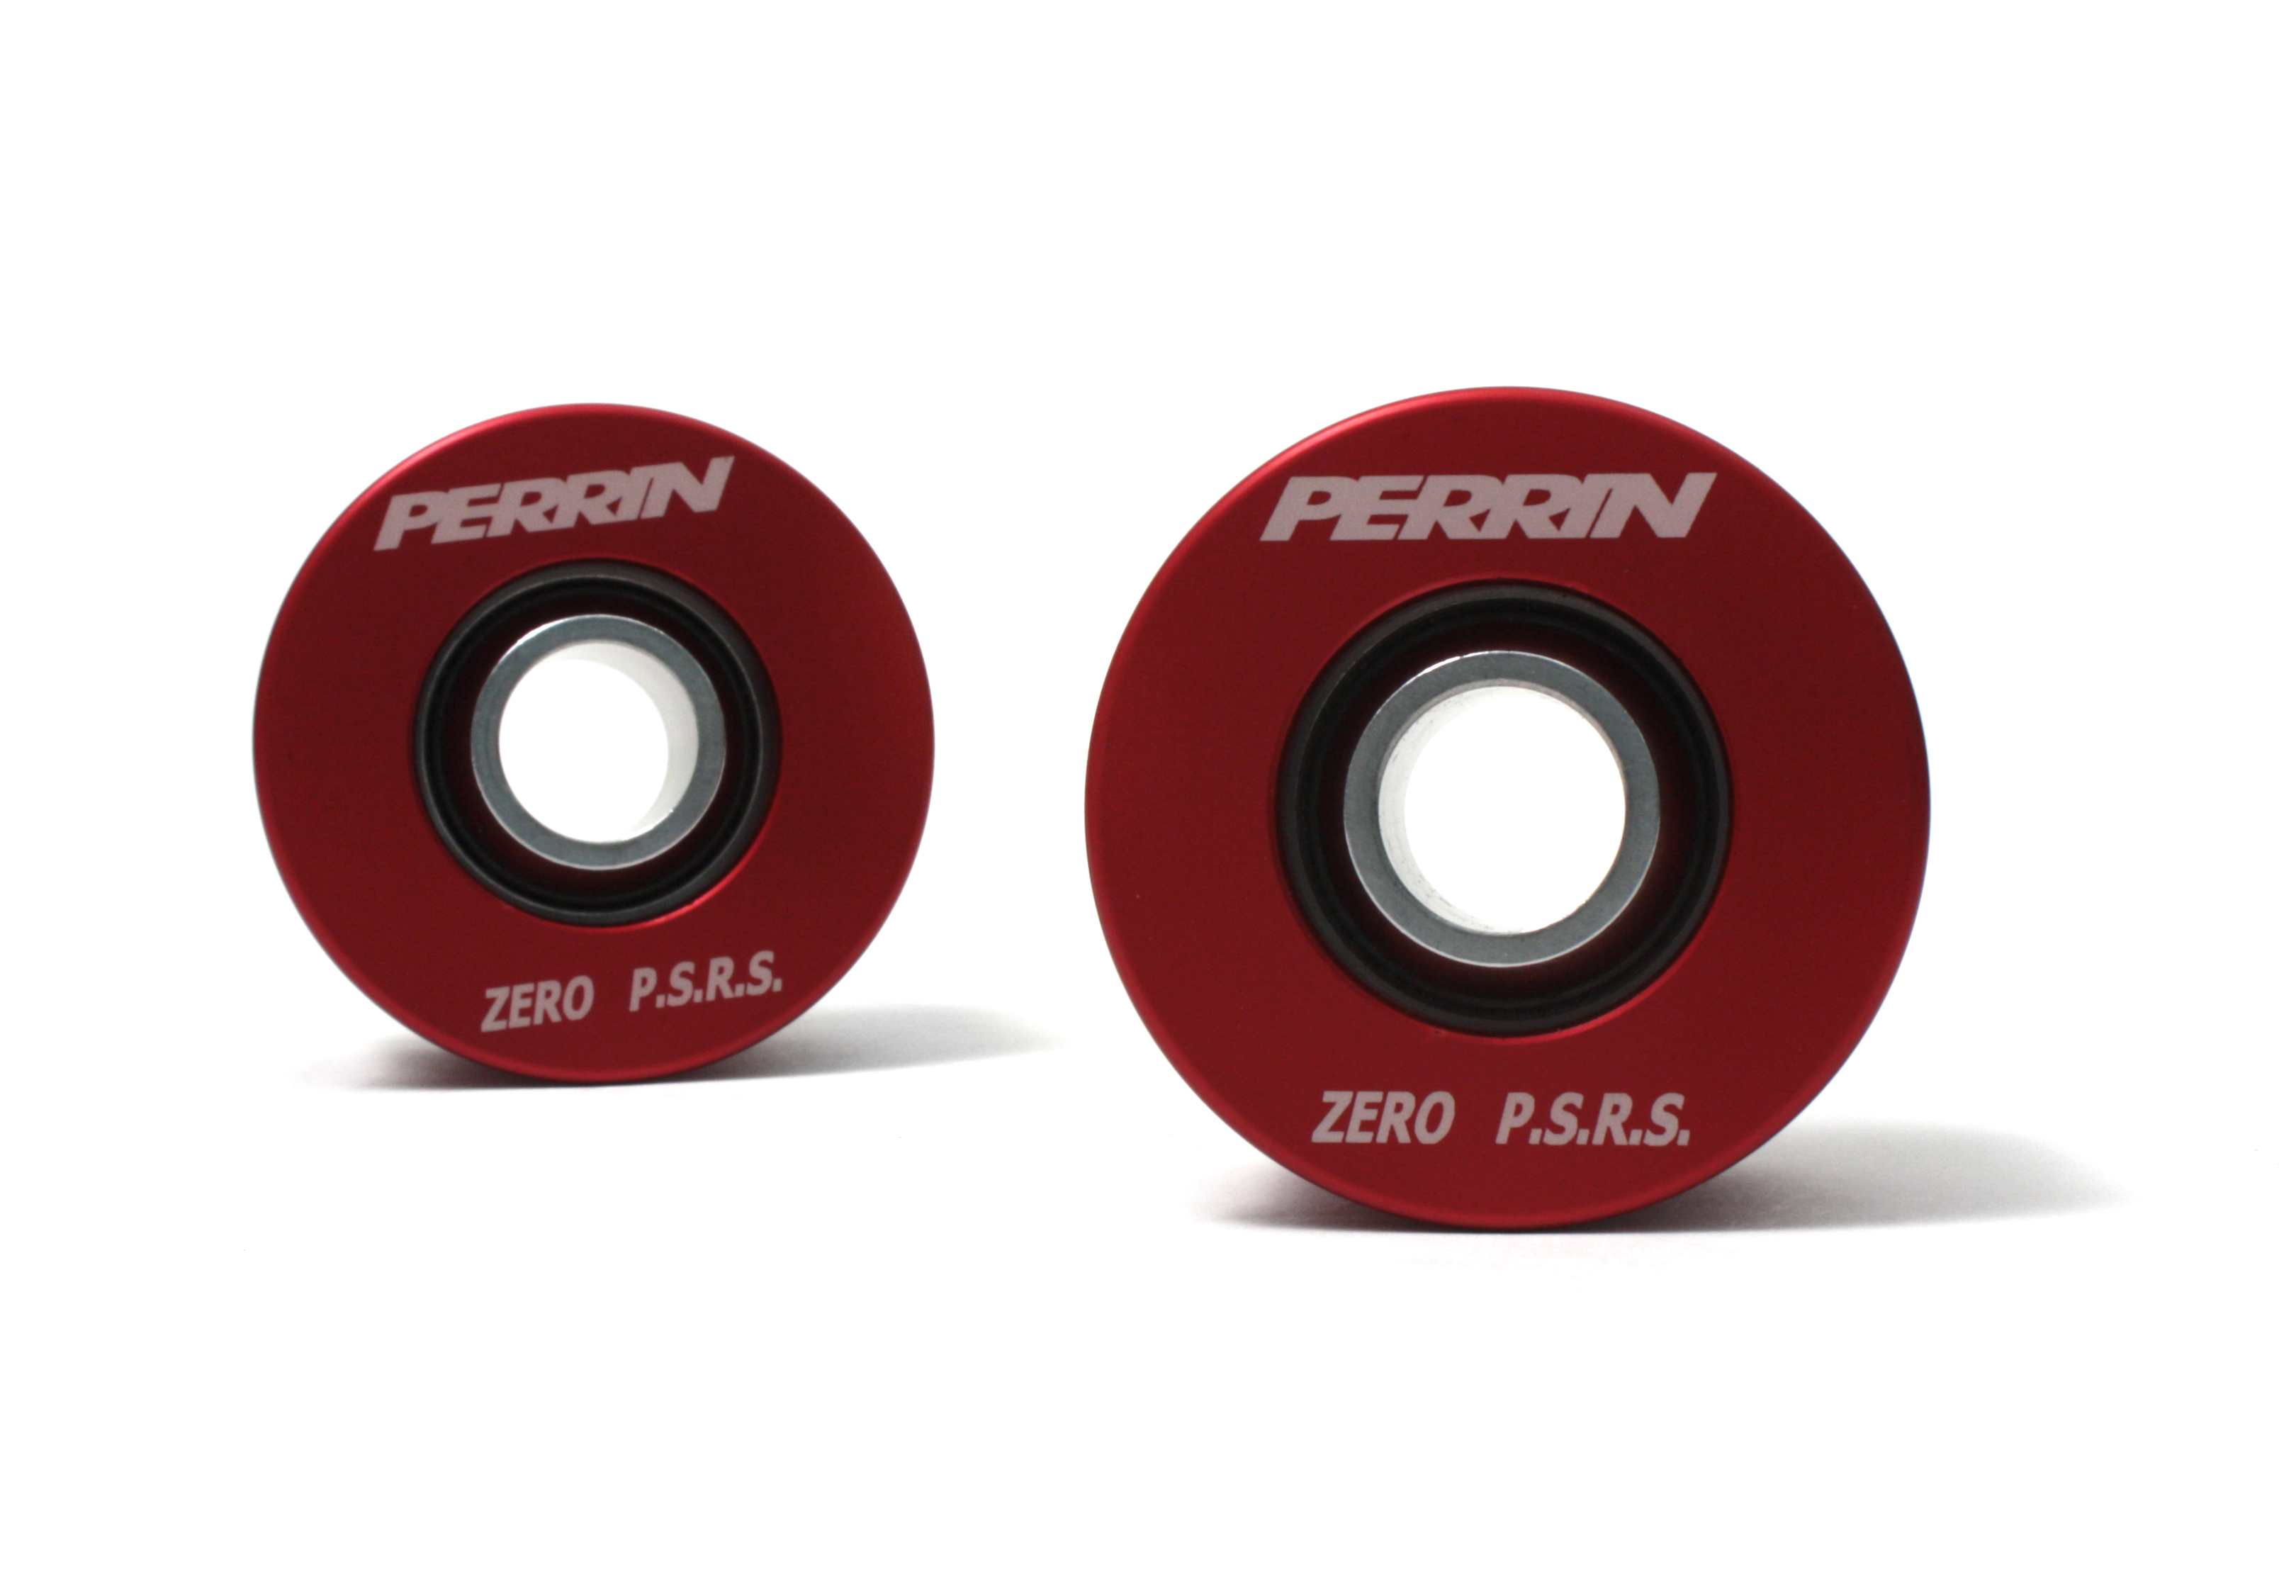 Perrin FR-S / BRZ Positive Steering Response System - Zero